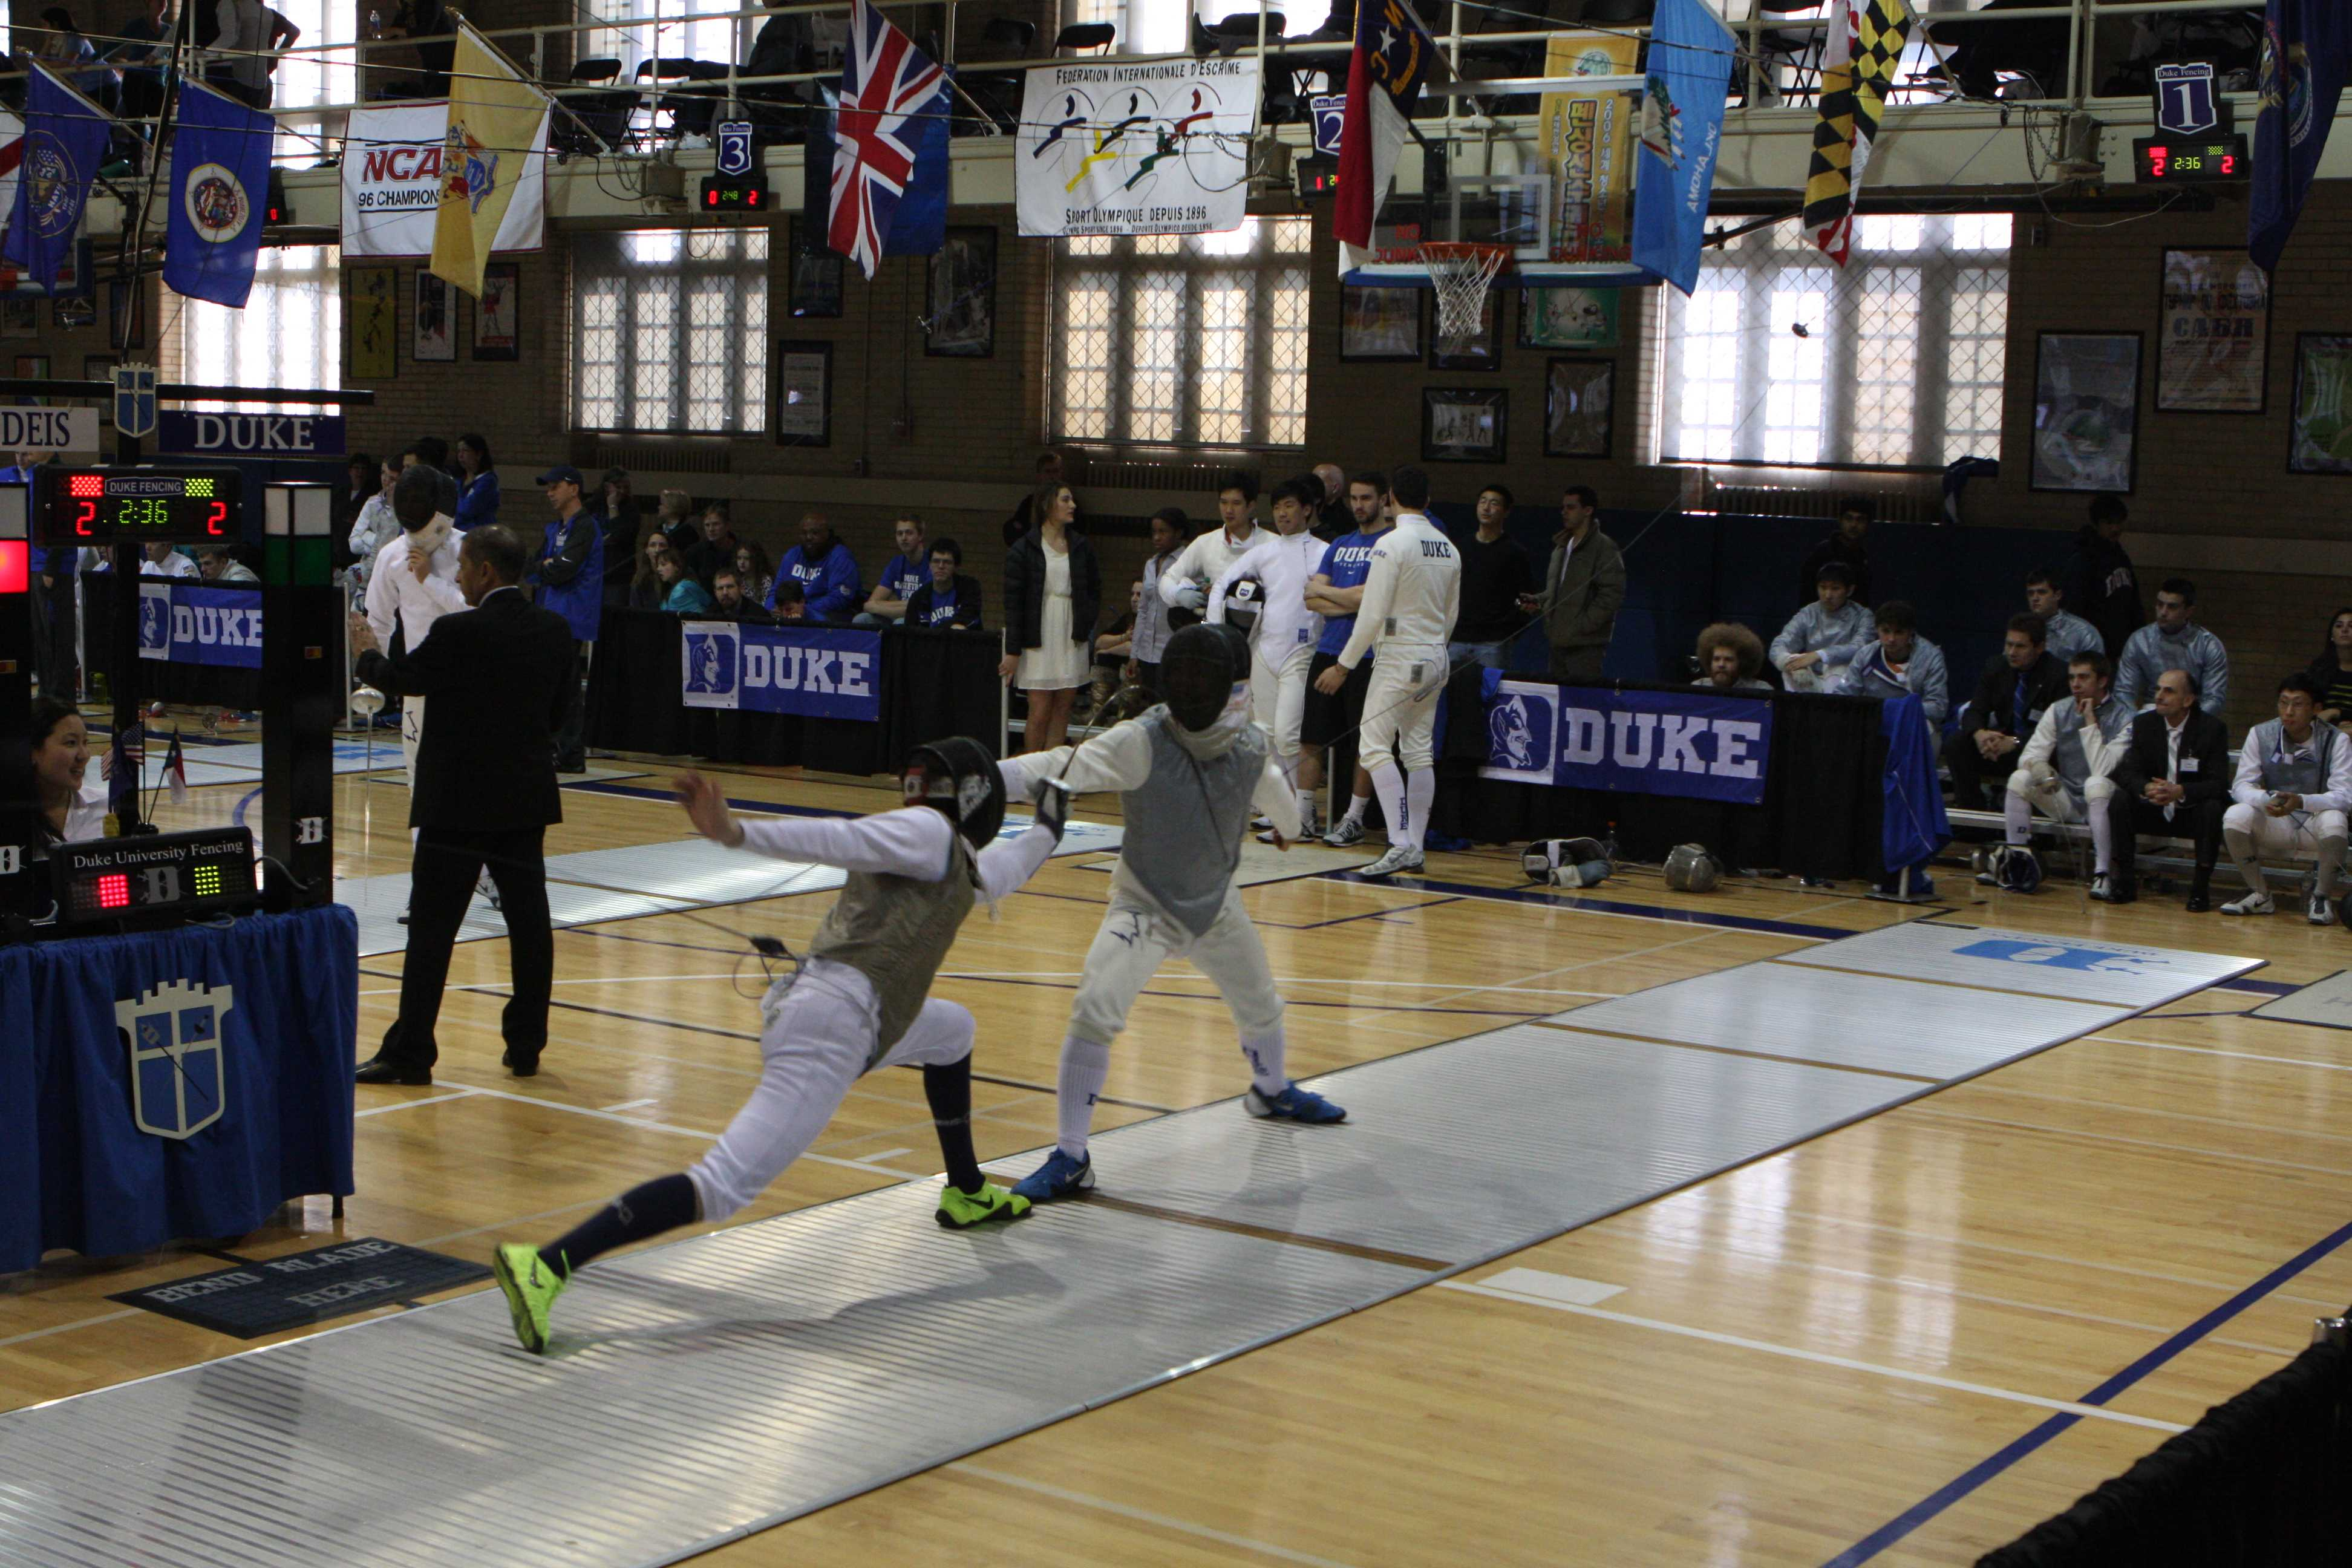 Noah Berman won a duel against an opponent from Duke University. Photo by Steven Berman.